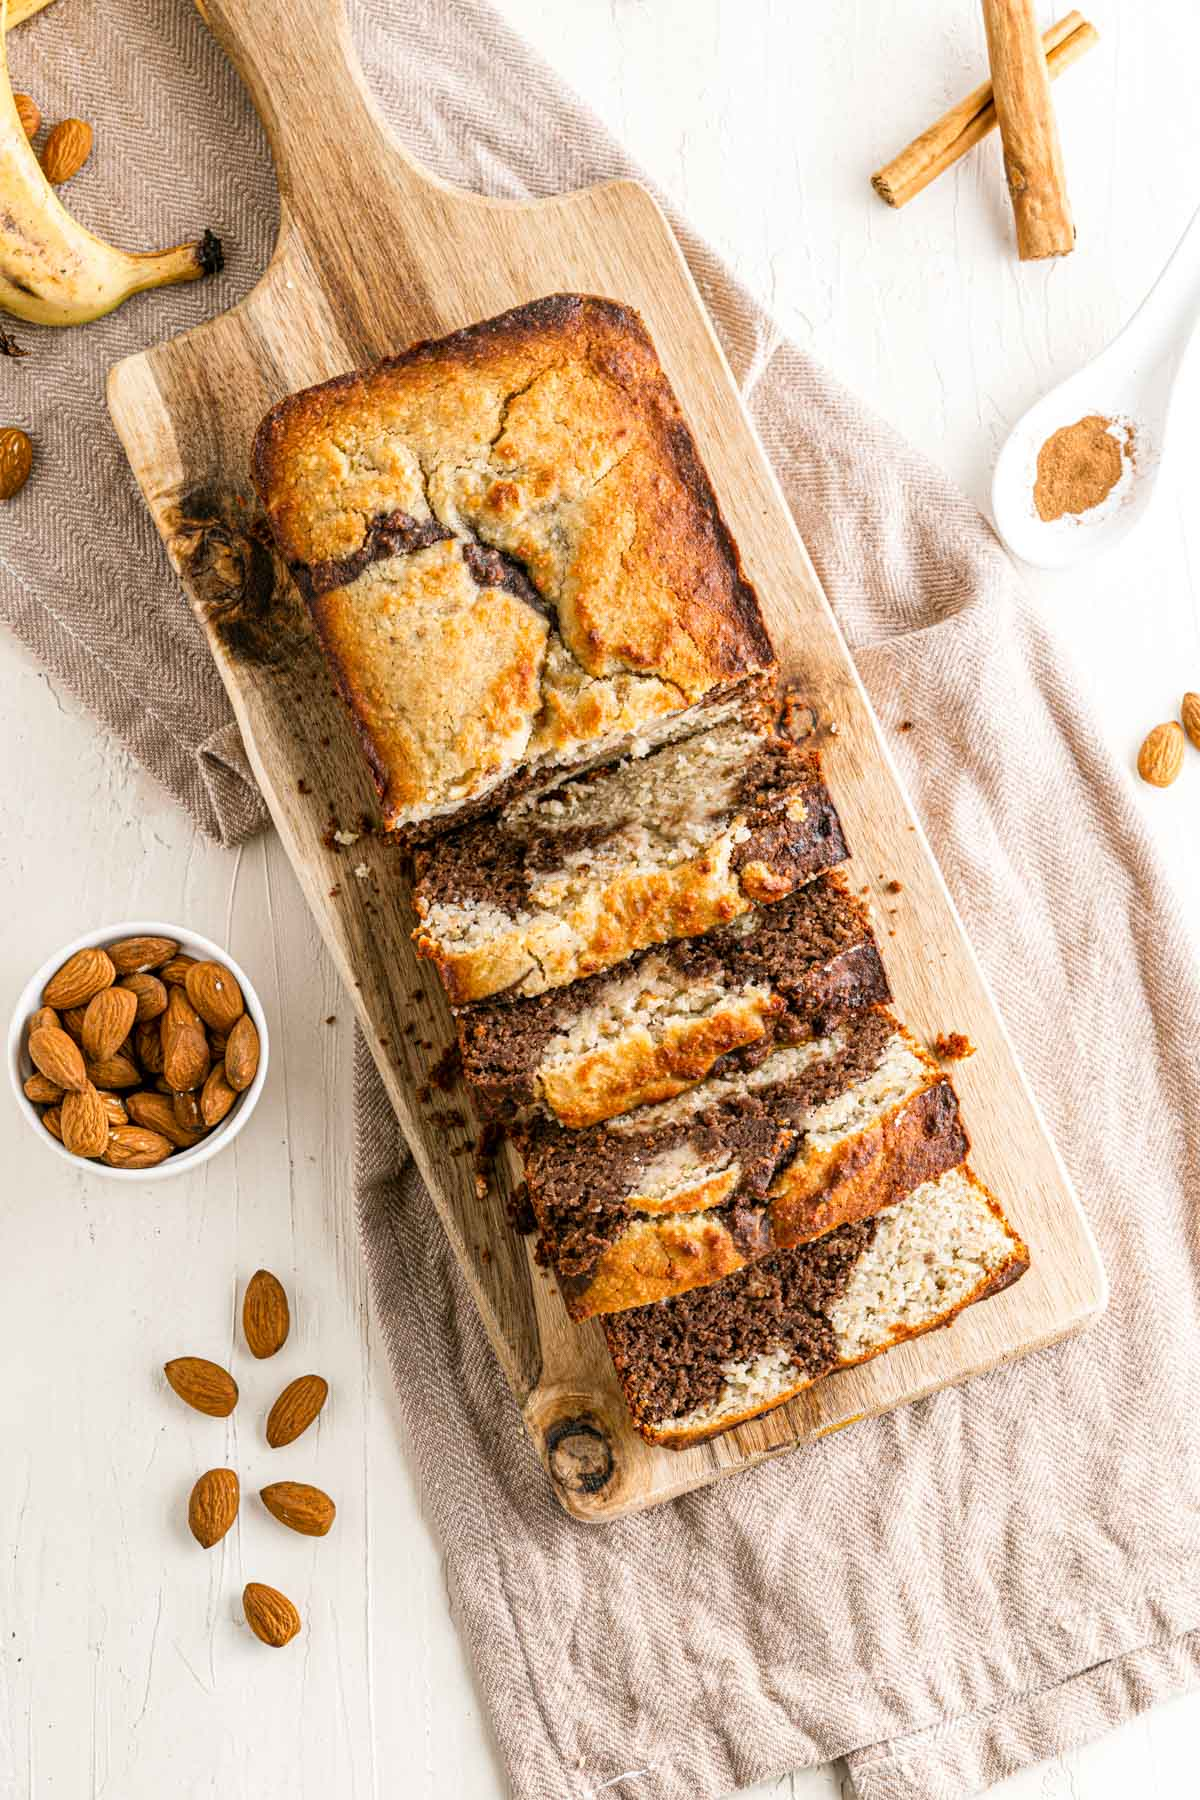 overhead view of baked banana bread with chocolate swirls and almonds